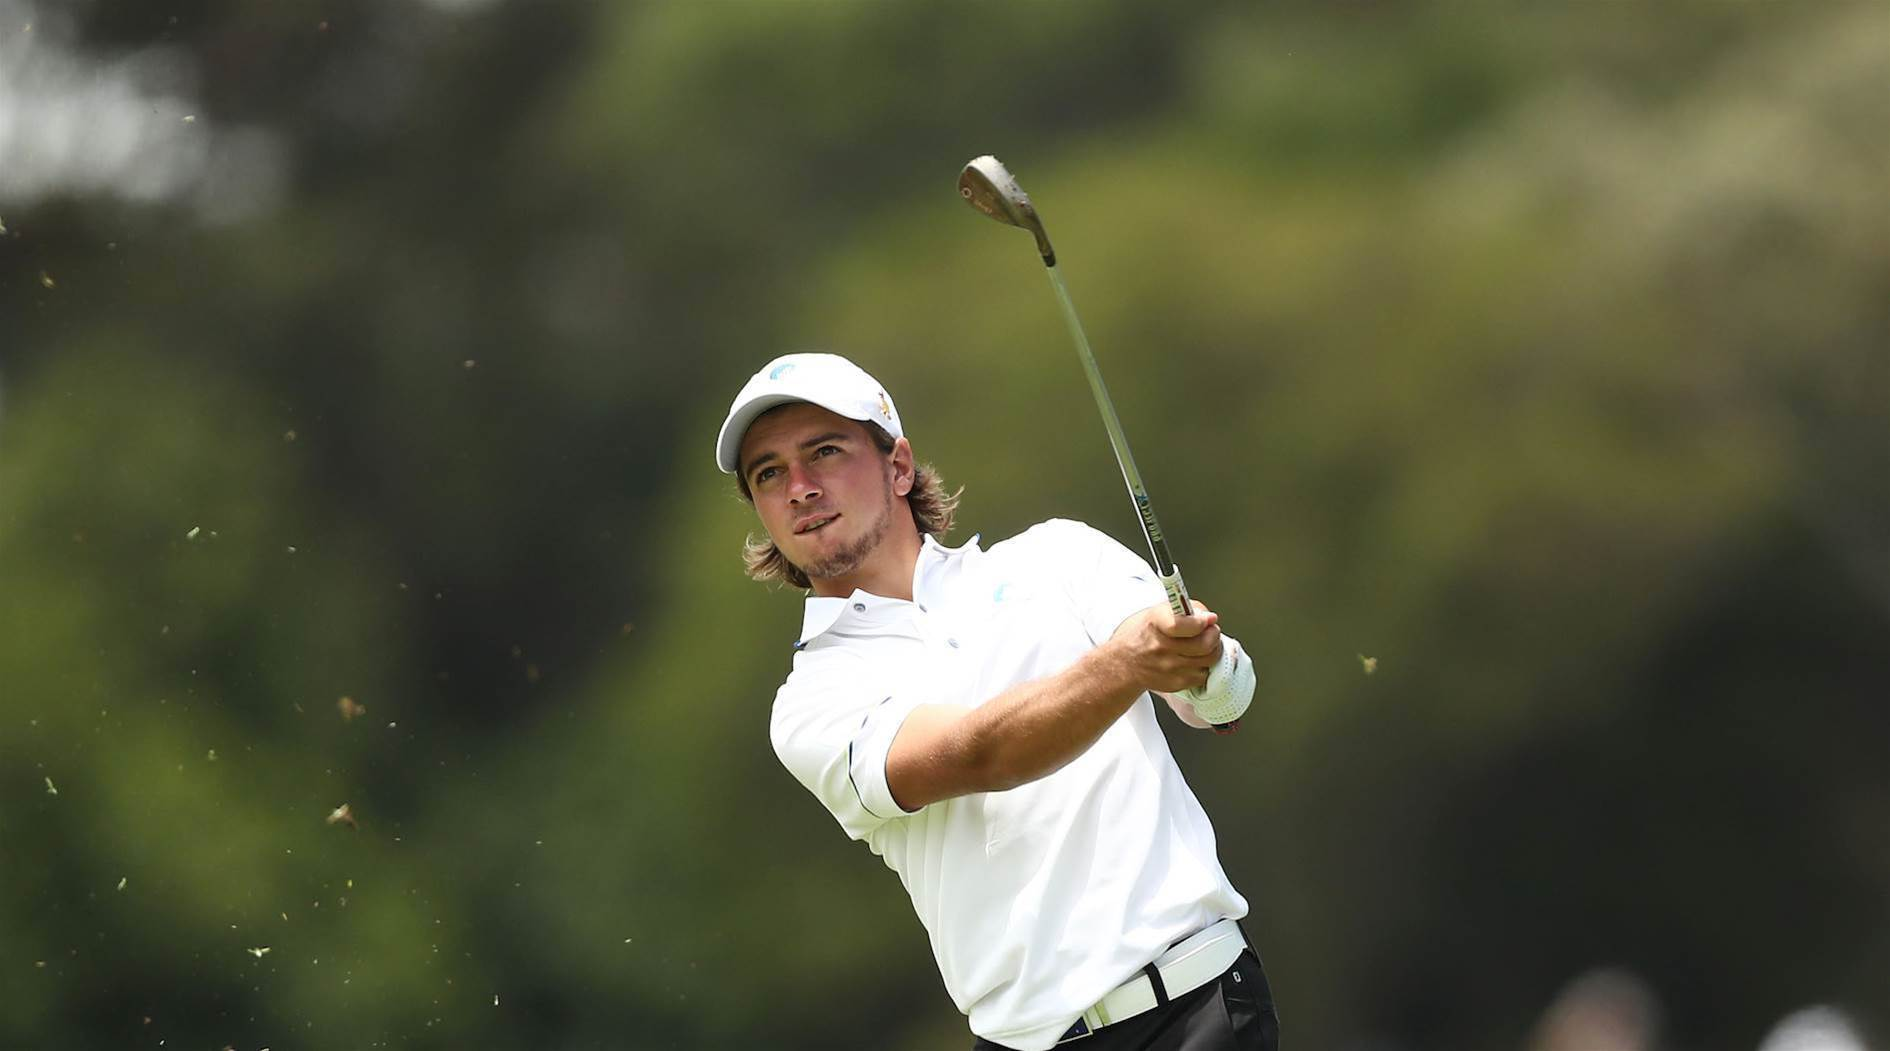 AUS AMATEUR: Men's top seed falls on first day of match play